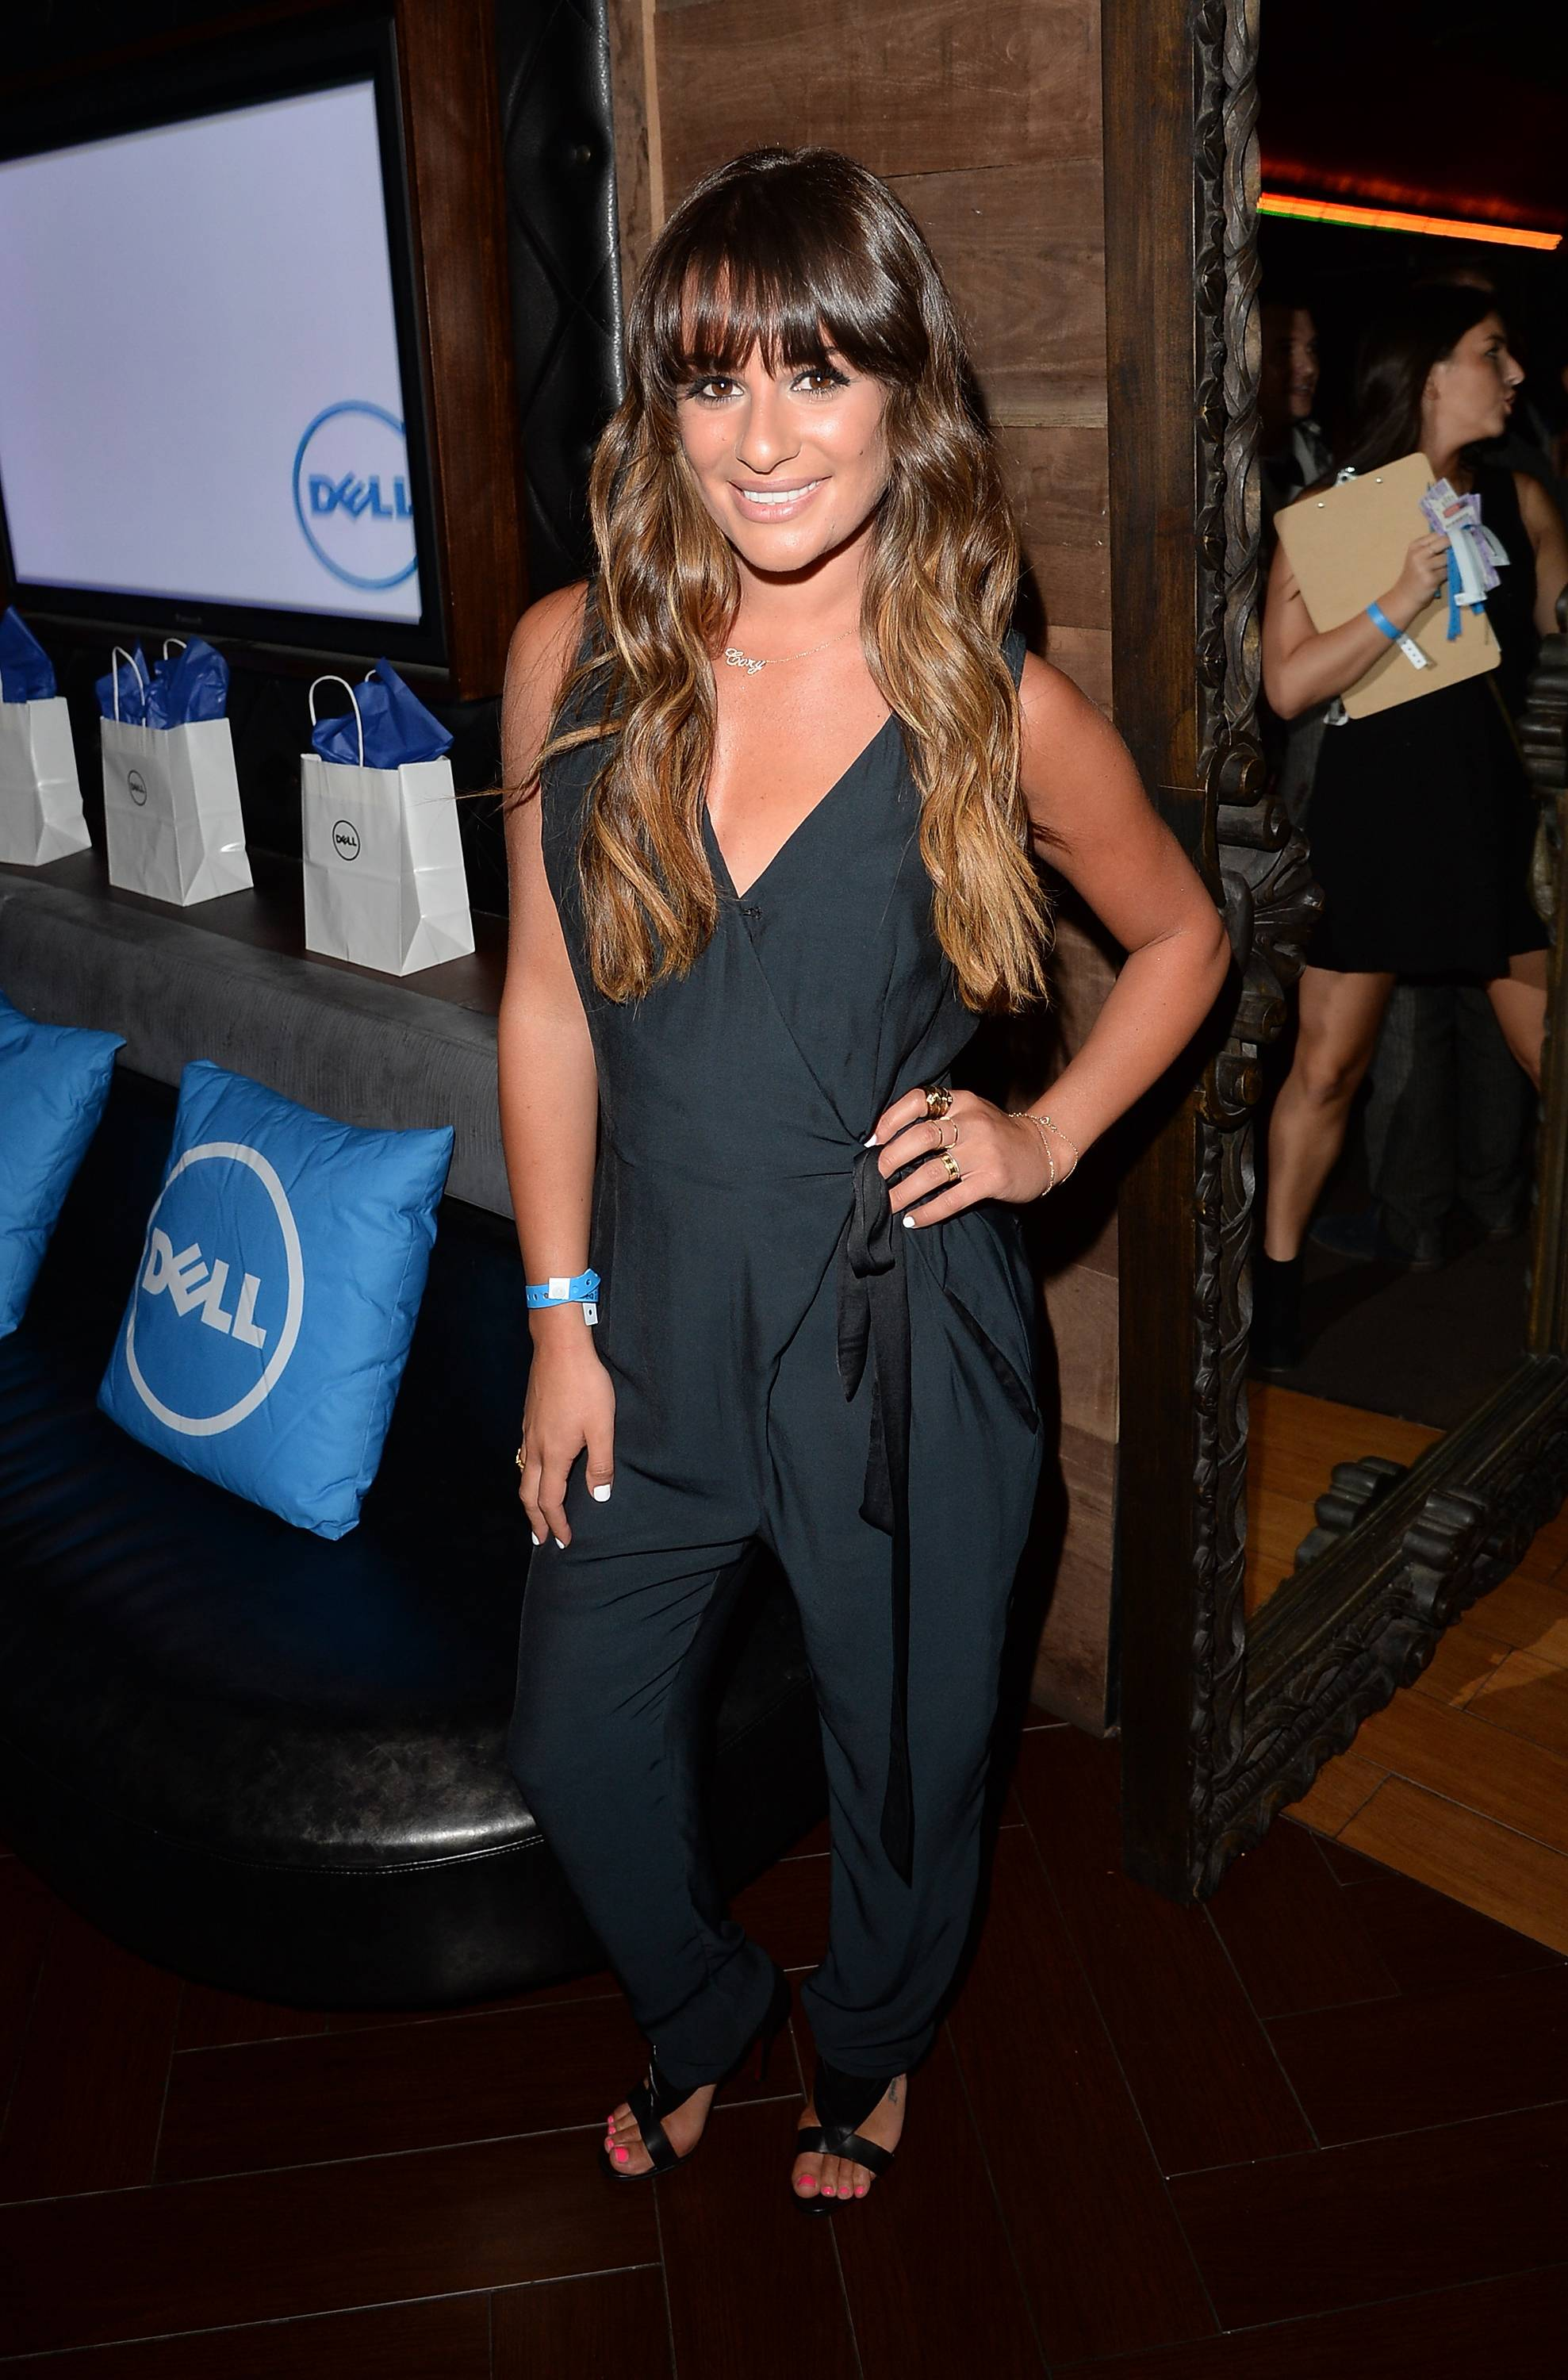 Dell Hosts Private Event At Hyde Lounge For Beyonce Concert